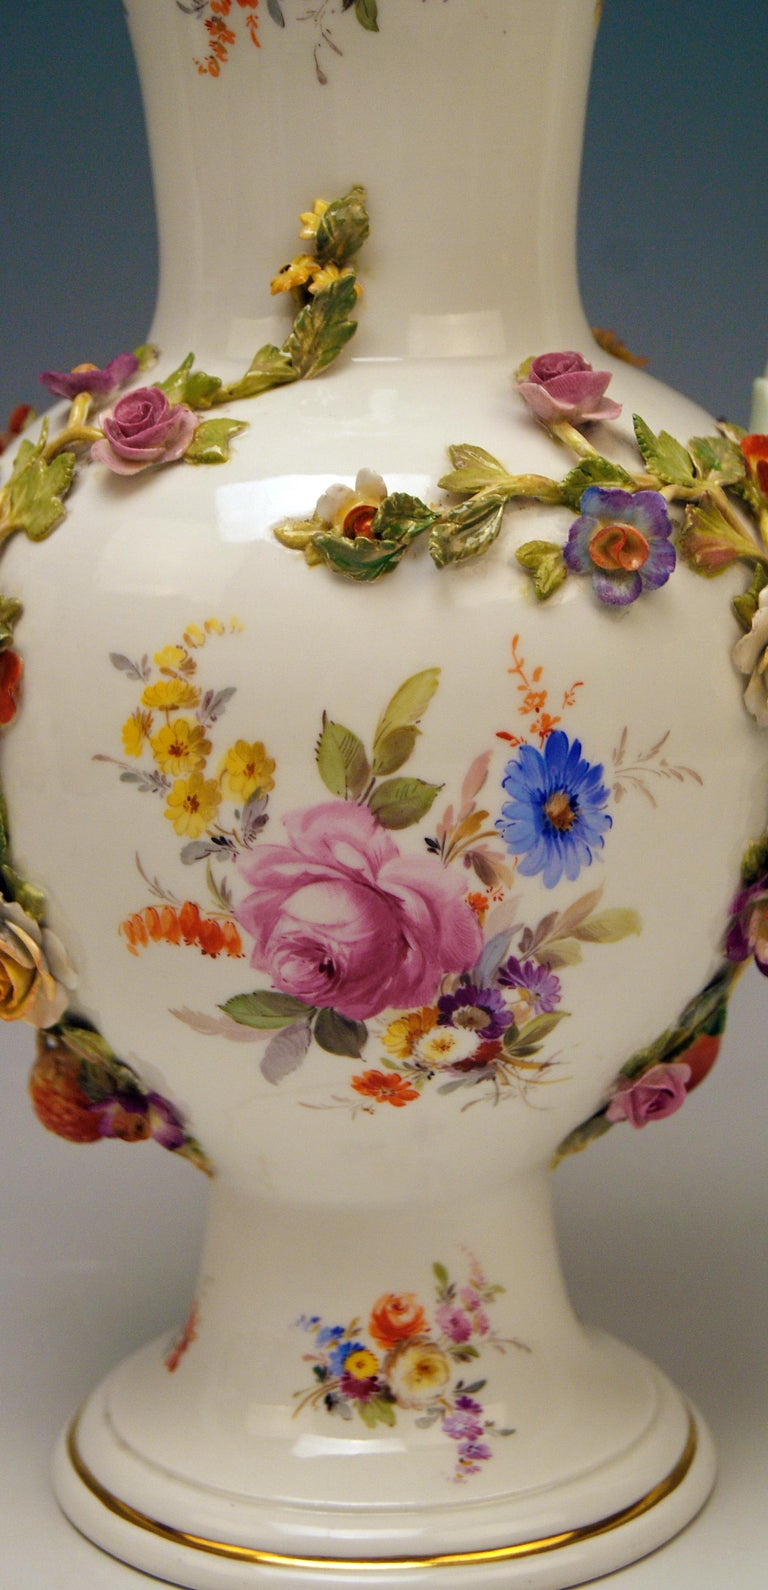 Painted Meissen Bellied Vase Sculptured Flowers Fruits, circa 1870 For Sale